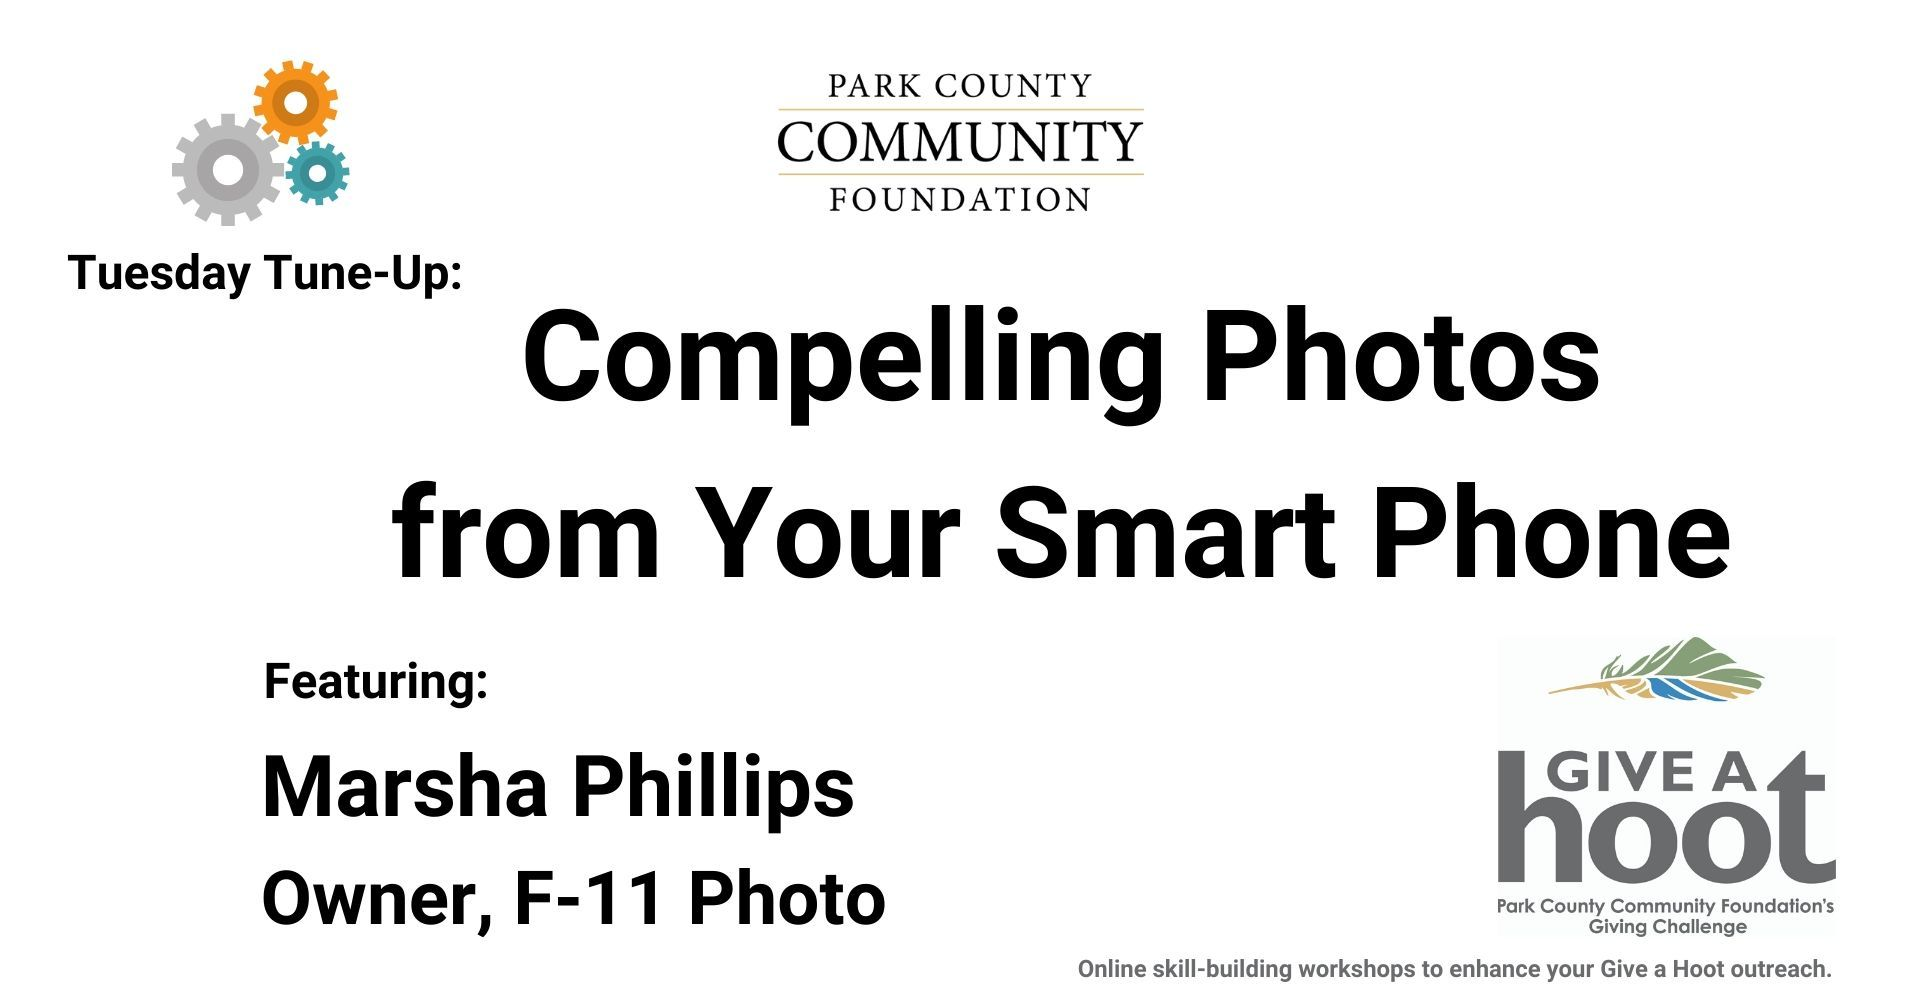 Compelling Photos from Your Smart Phone